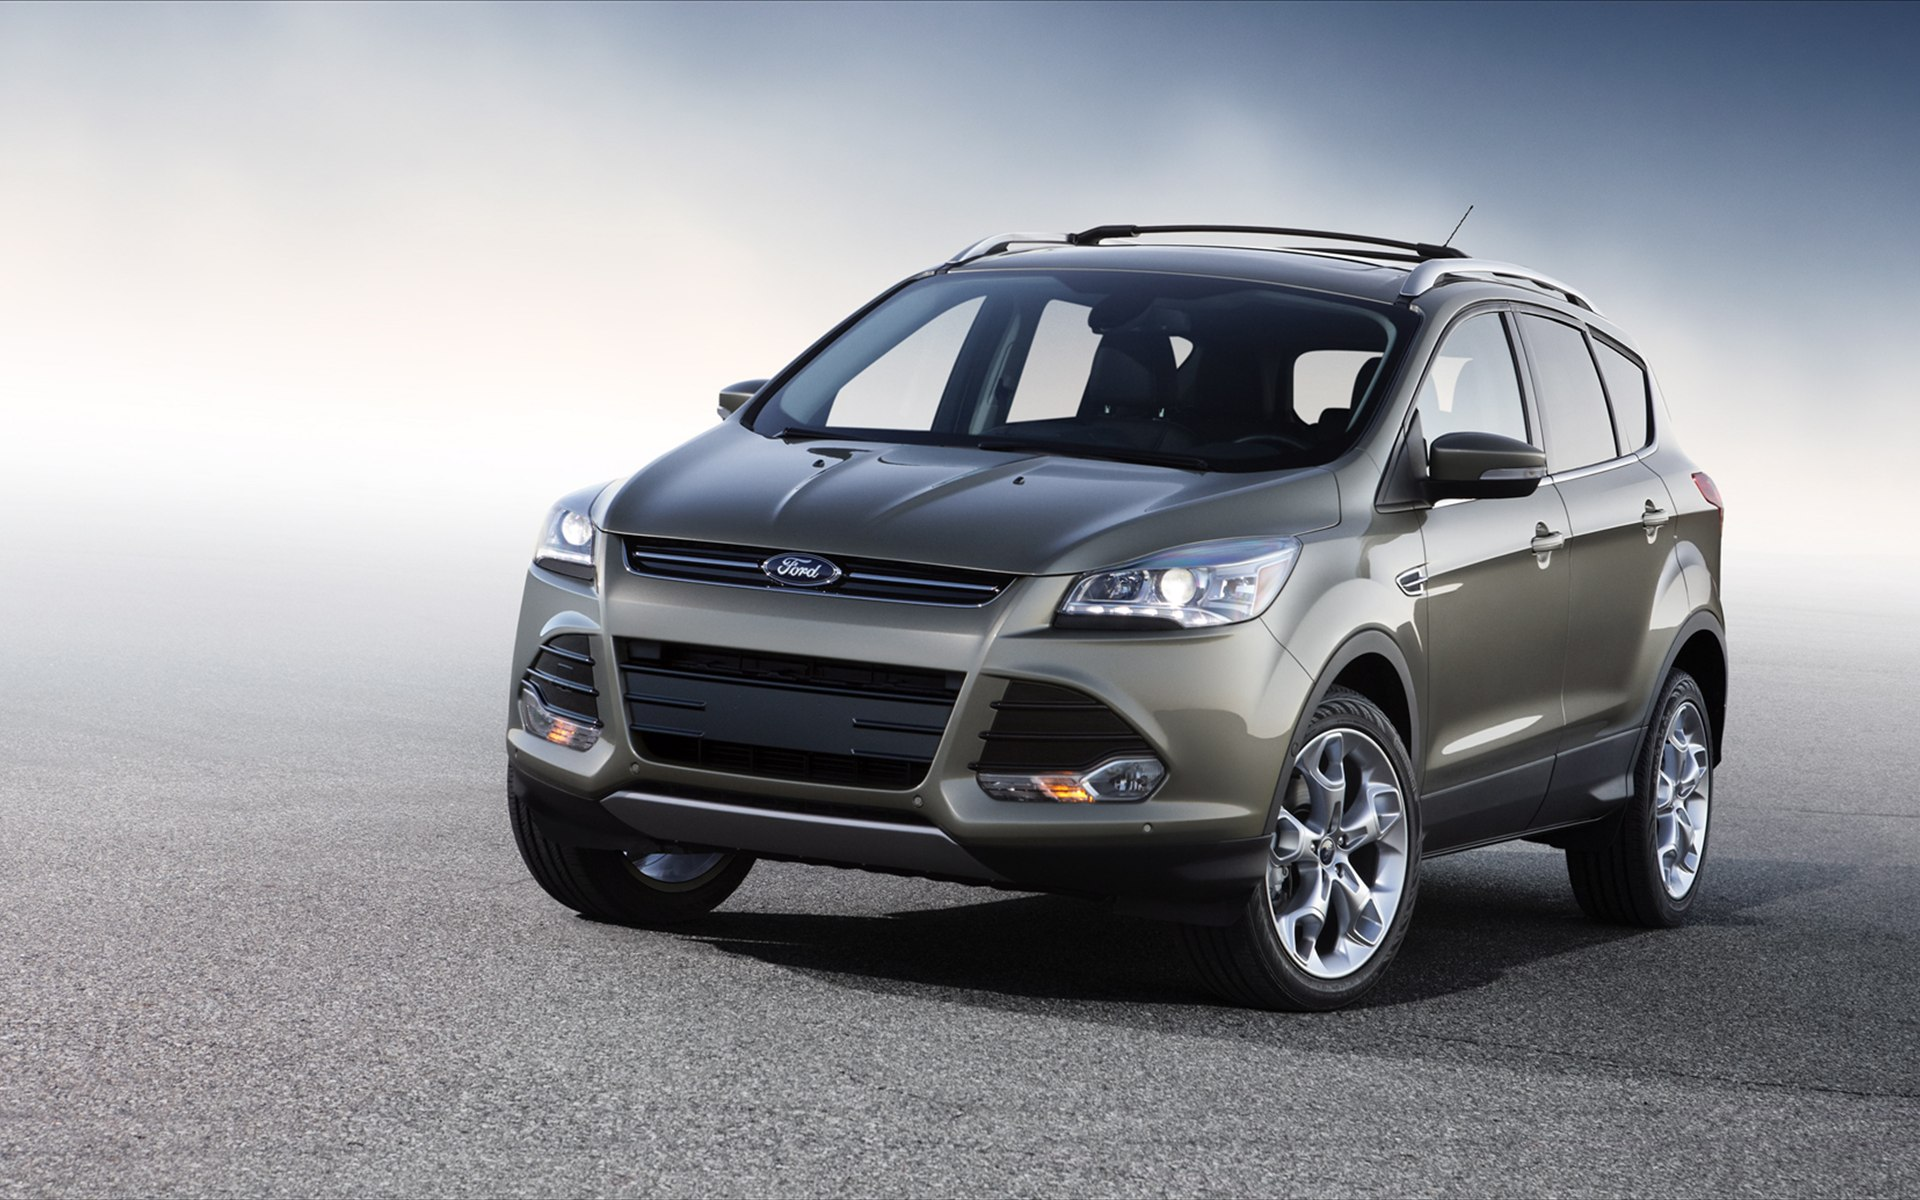 2013 Ford Escape Wallpaper | HD Car Wallpapers